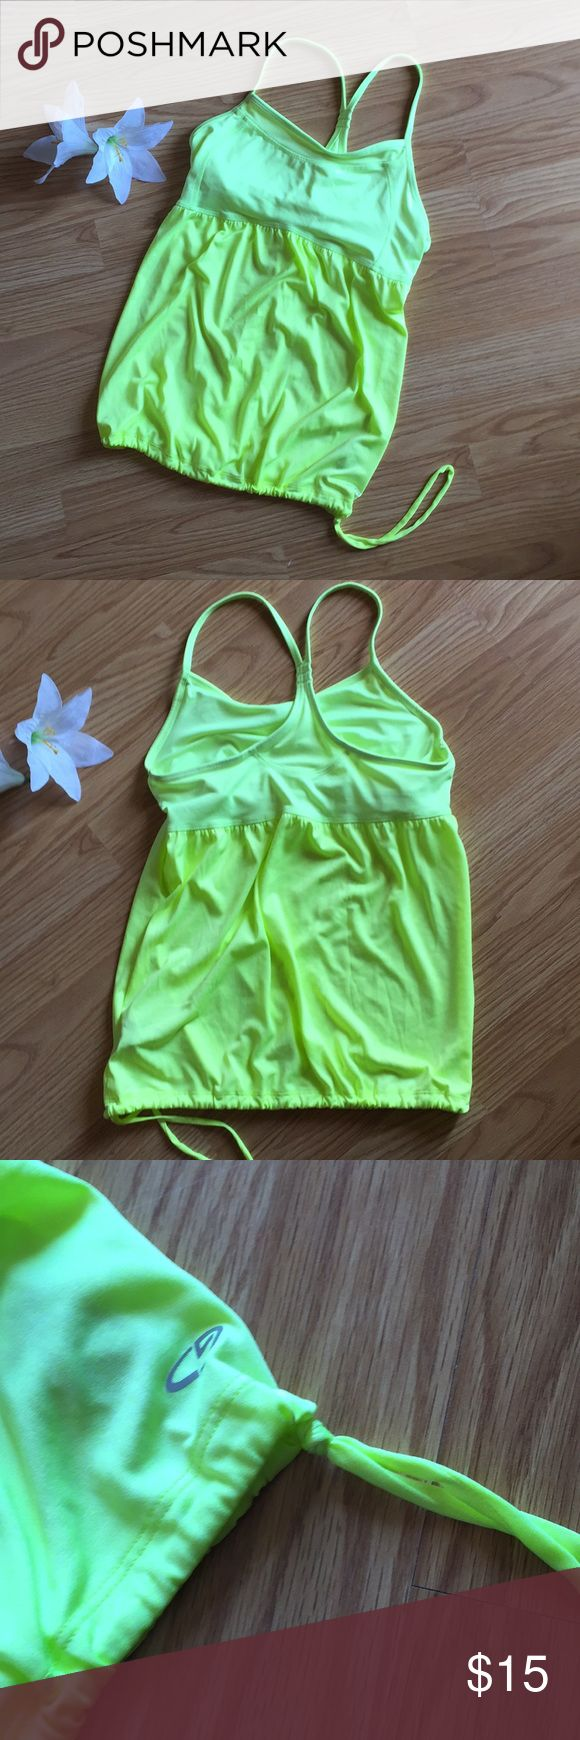 Champion Neon Yellow Bubble Tank Neon yellow bubble tank. Perfect for working out and the bottom is adjustable. Fitted around bust. There is a built in bra but it is not padded.   Size medium. Excellent condition. Champion Tops